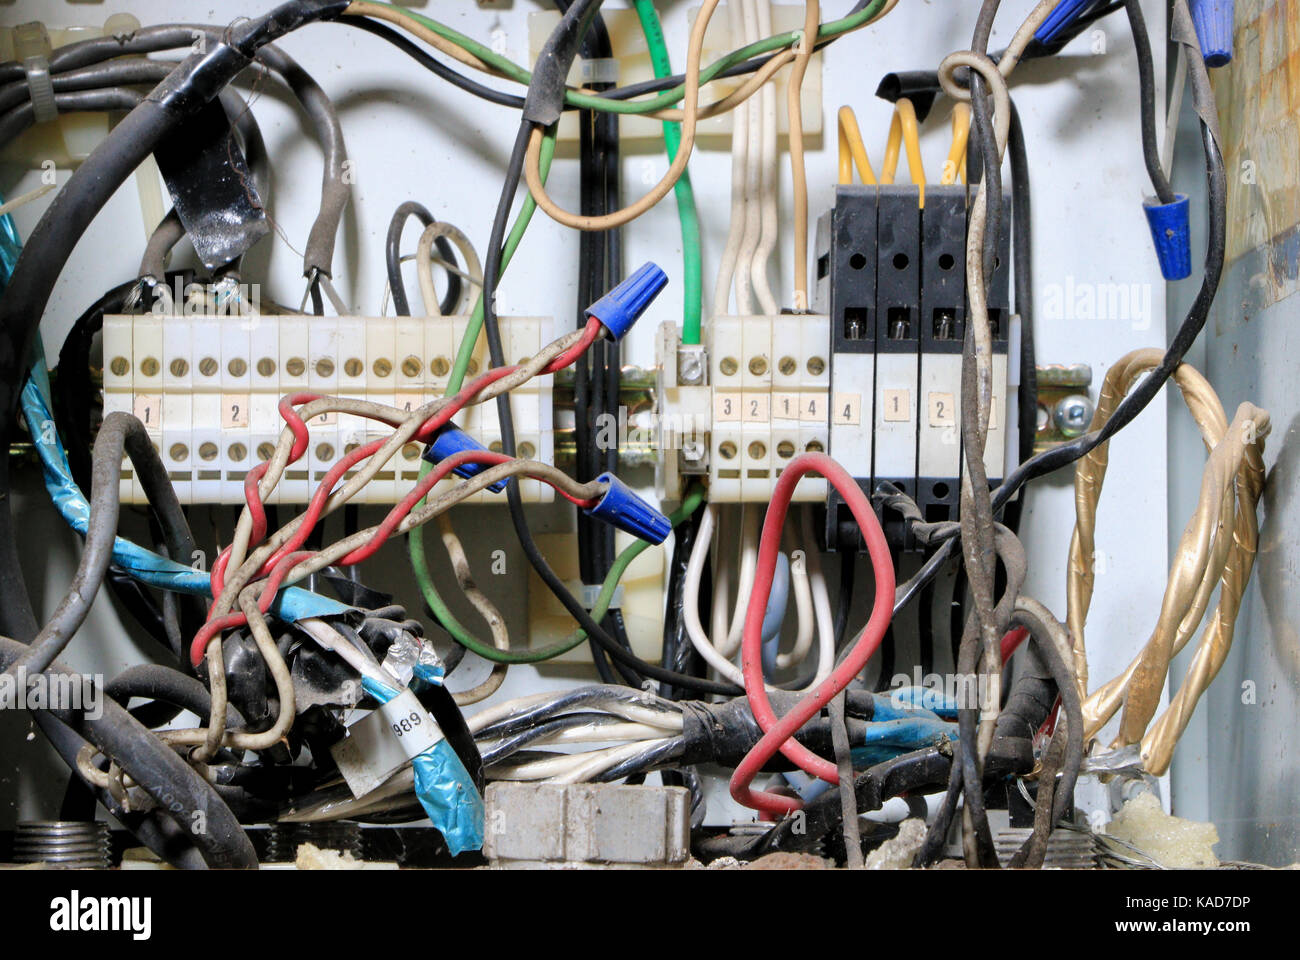 Electrical Junction Box Stock Photos House Wiring Telephone Or Data In E B Eddy Paper Mill Ottawa Canada